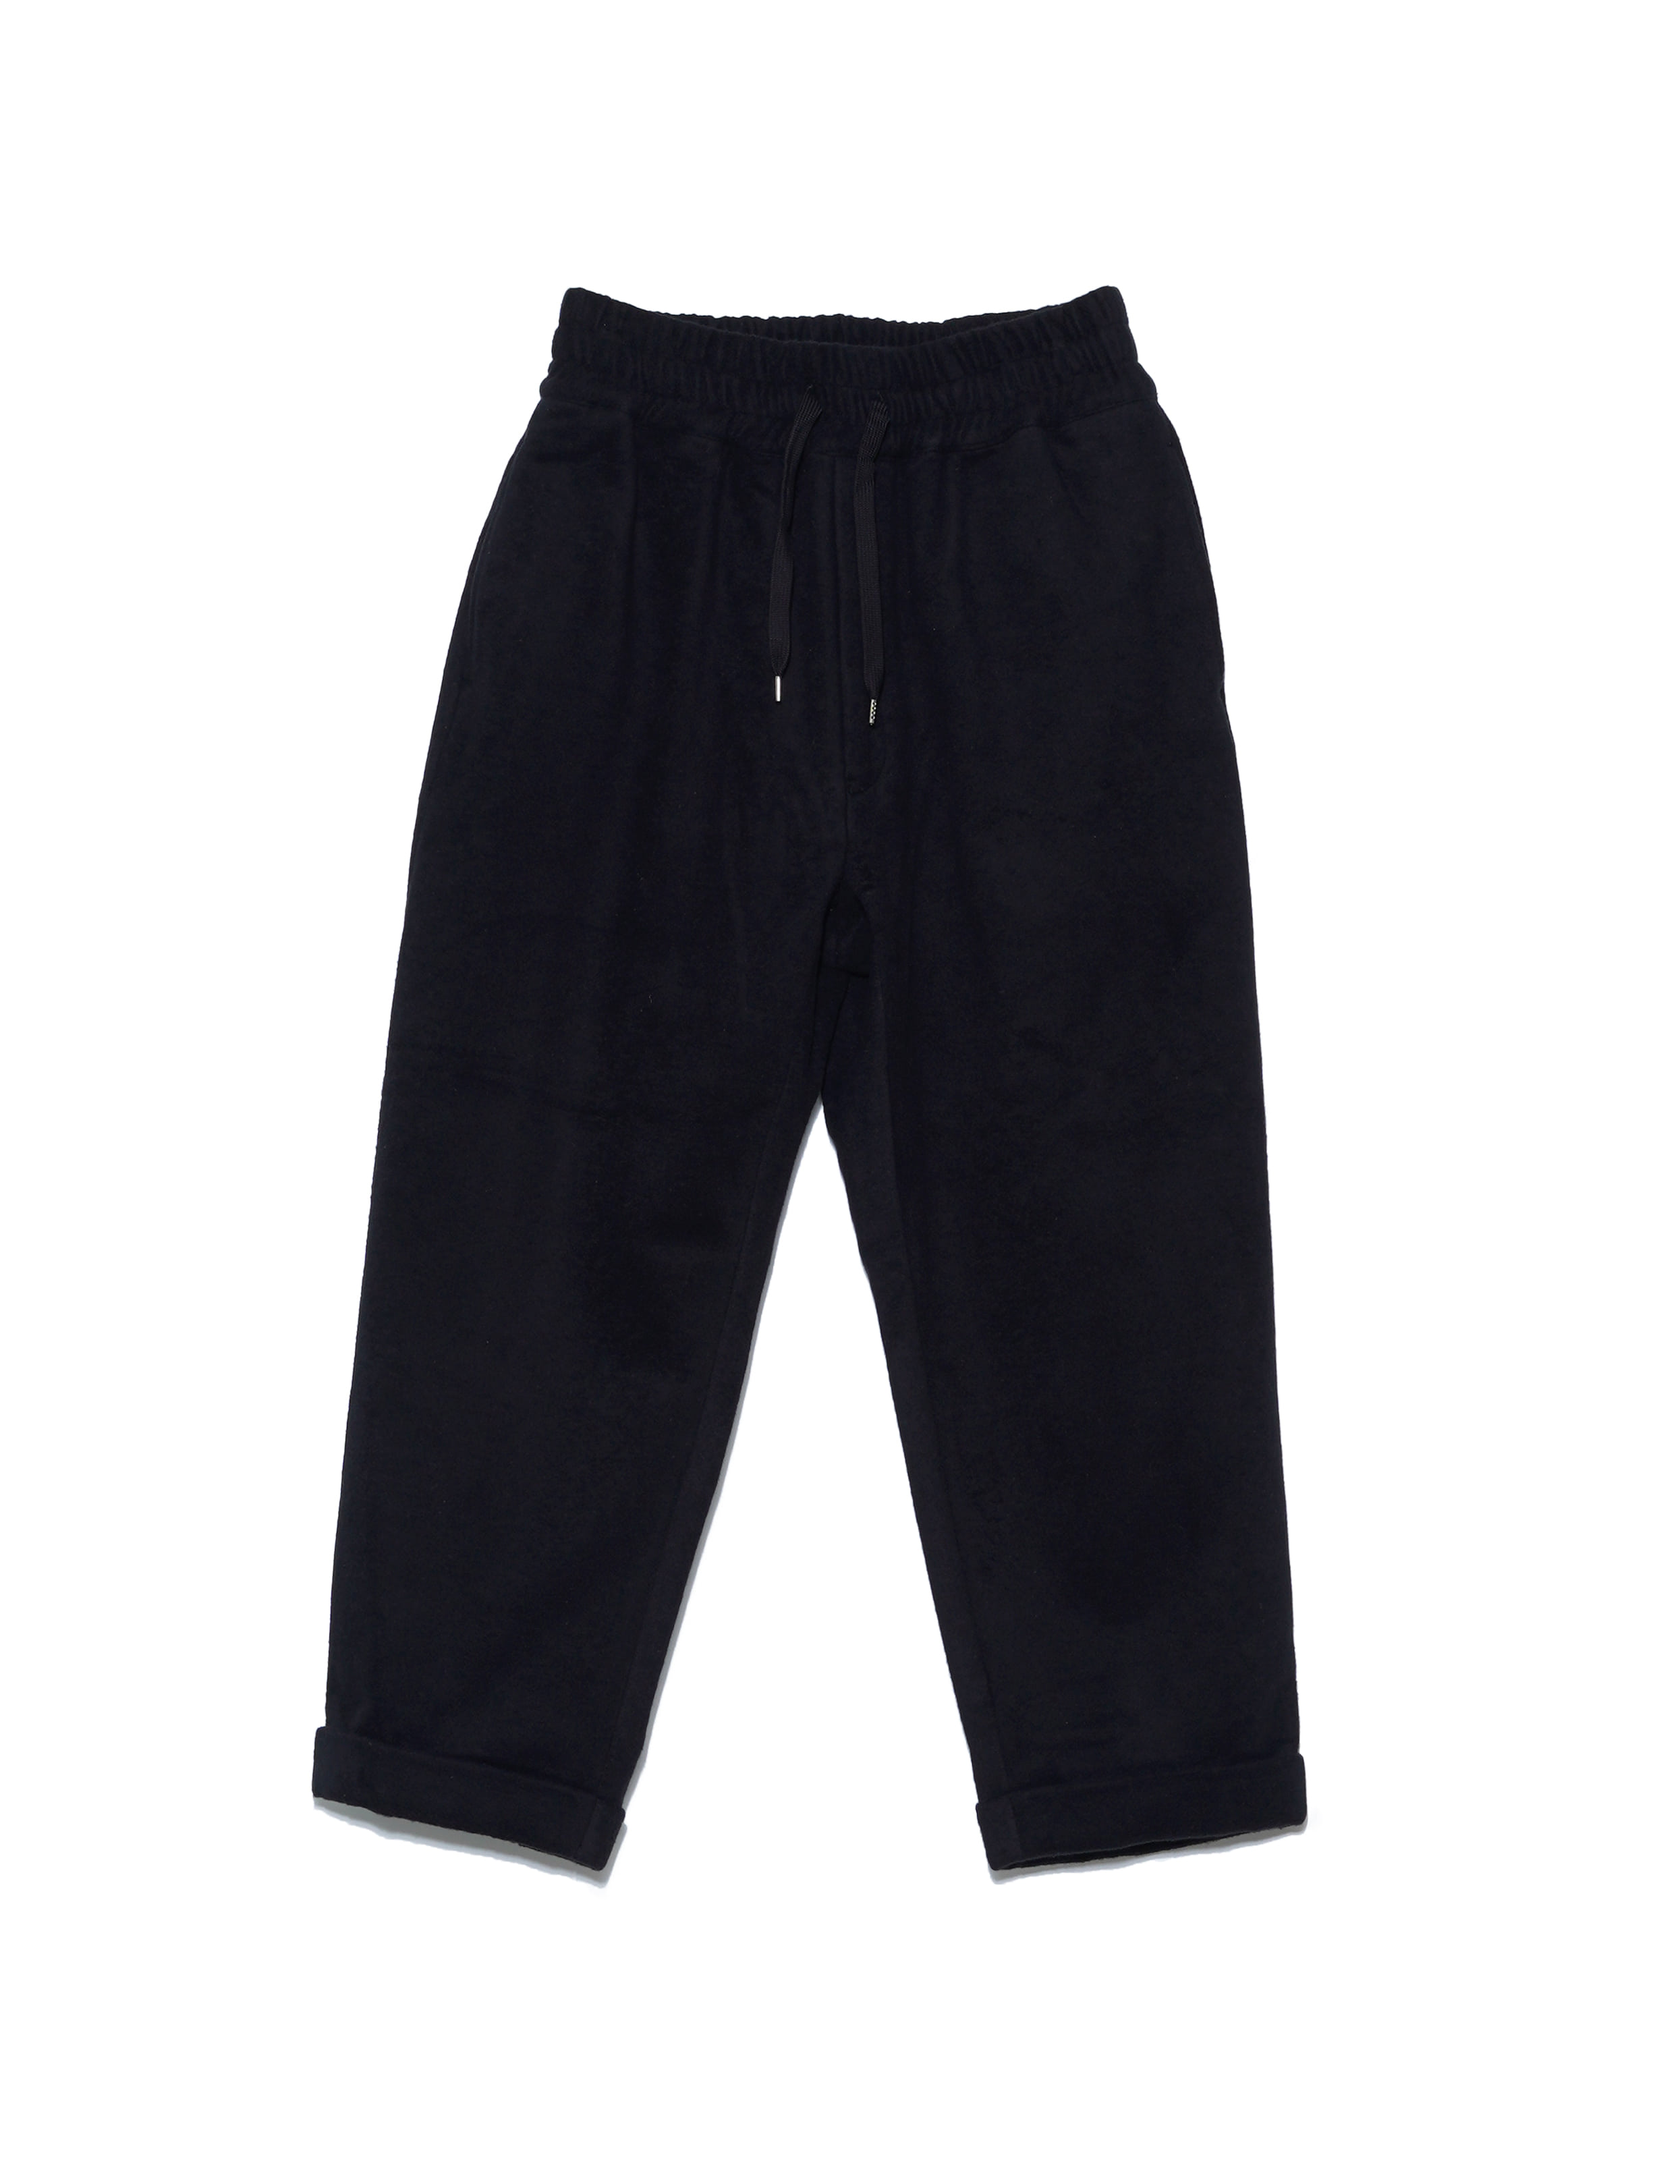 GUM SLACKS (BLACK)